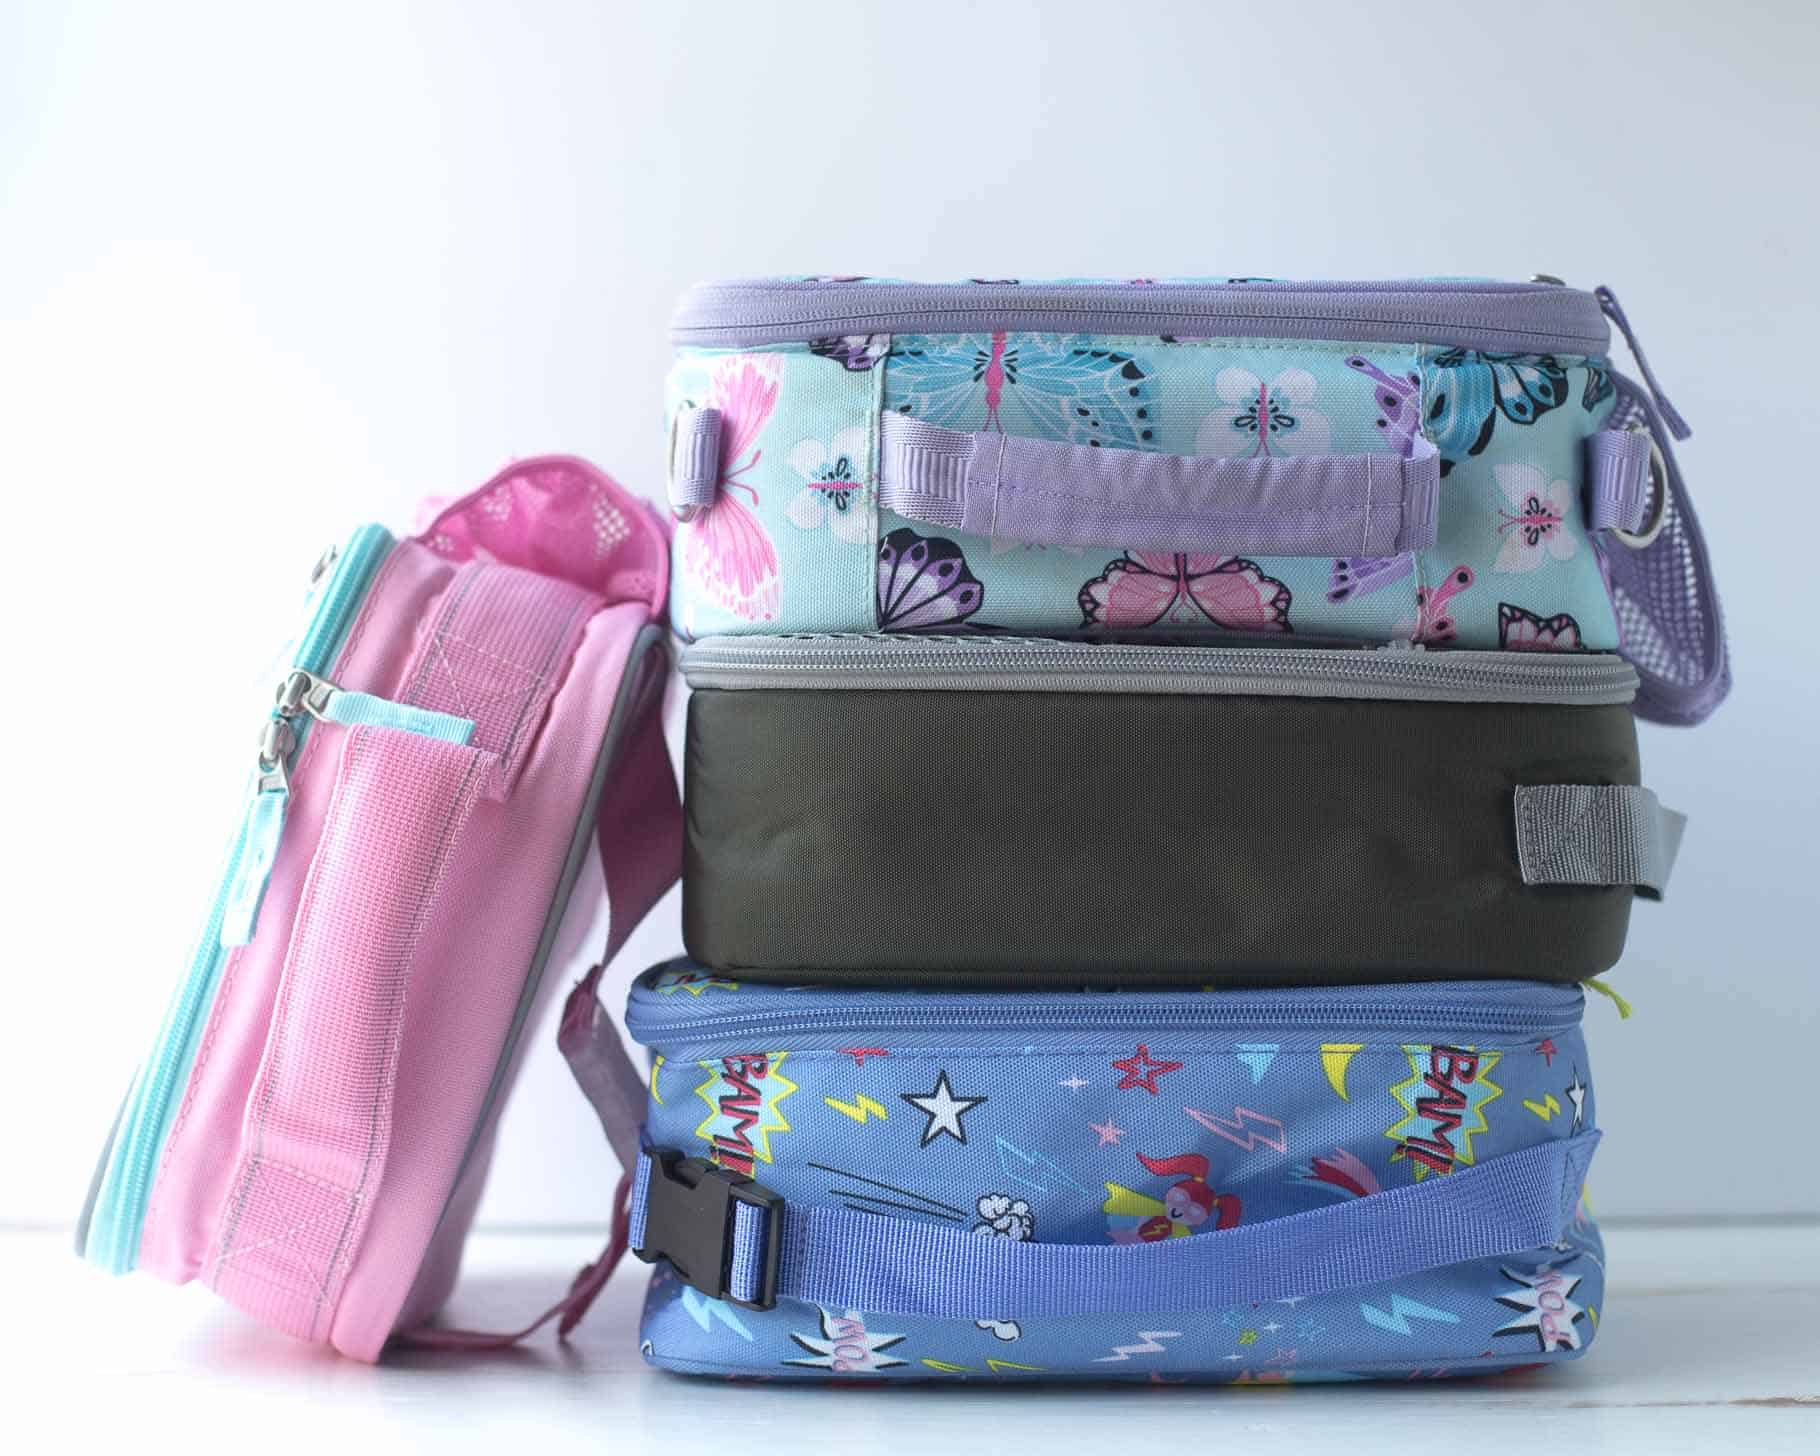 Insulated lunch boxes for kids - L.L. Bean Classic, Packit Freezable Classic, Pottery Barn Fairfax Classic, and Pottery Barn Mackenzie Cold Pack.